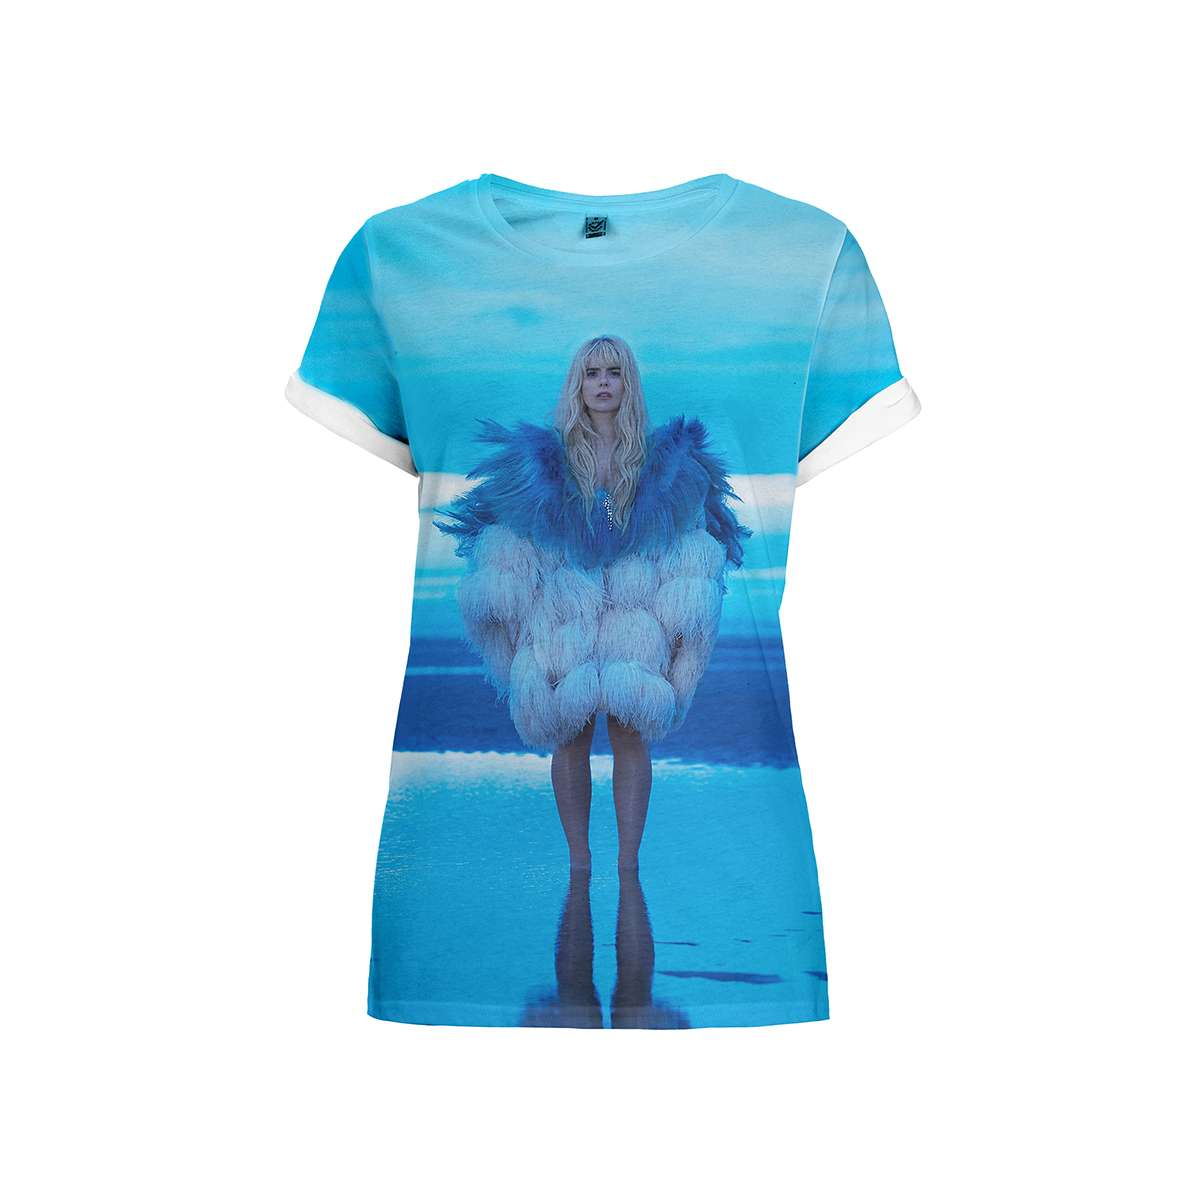 Feather Coat – Sublimation Tee - Paloma Faith